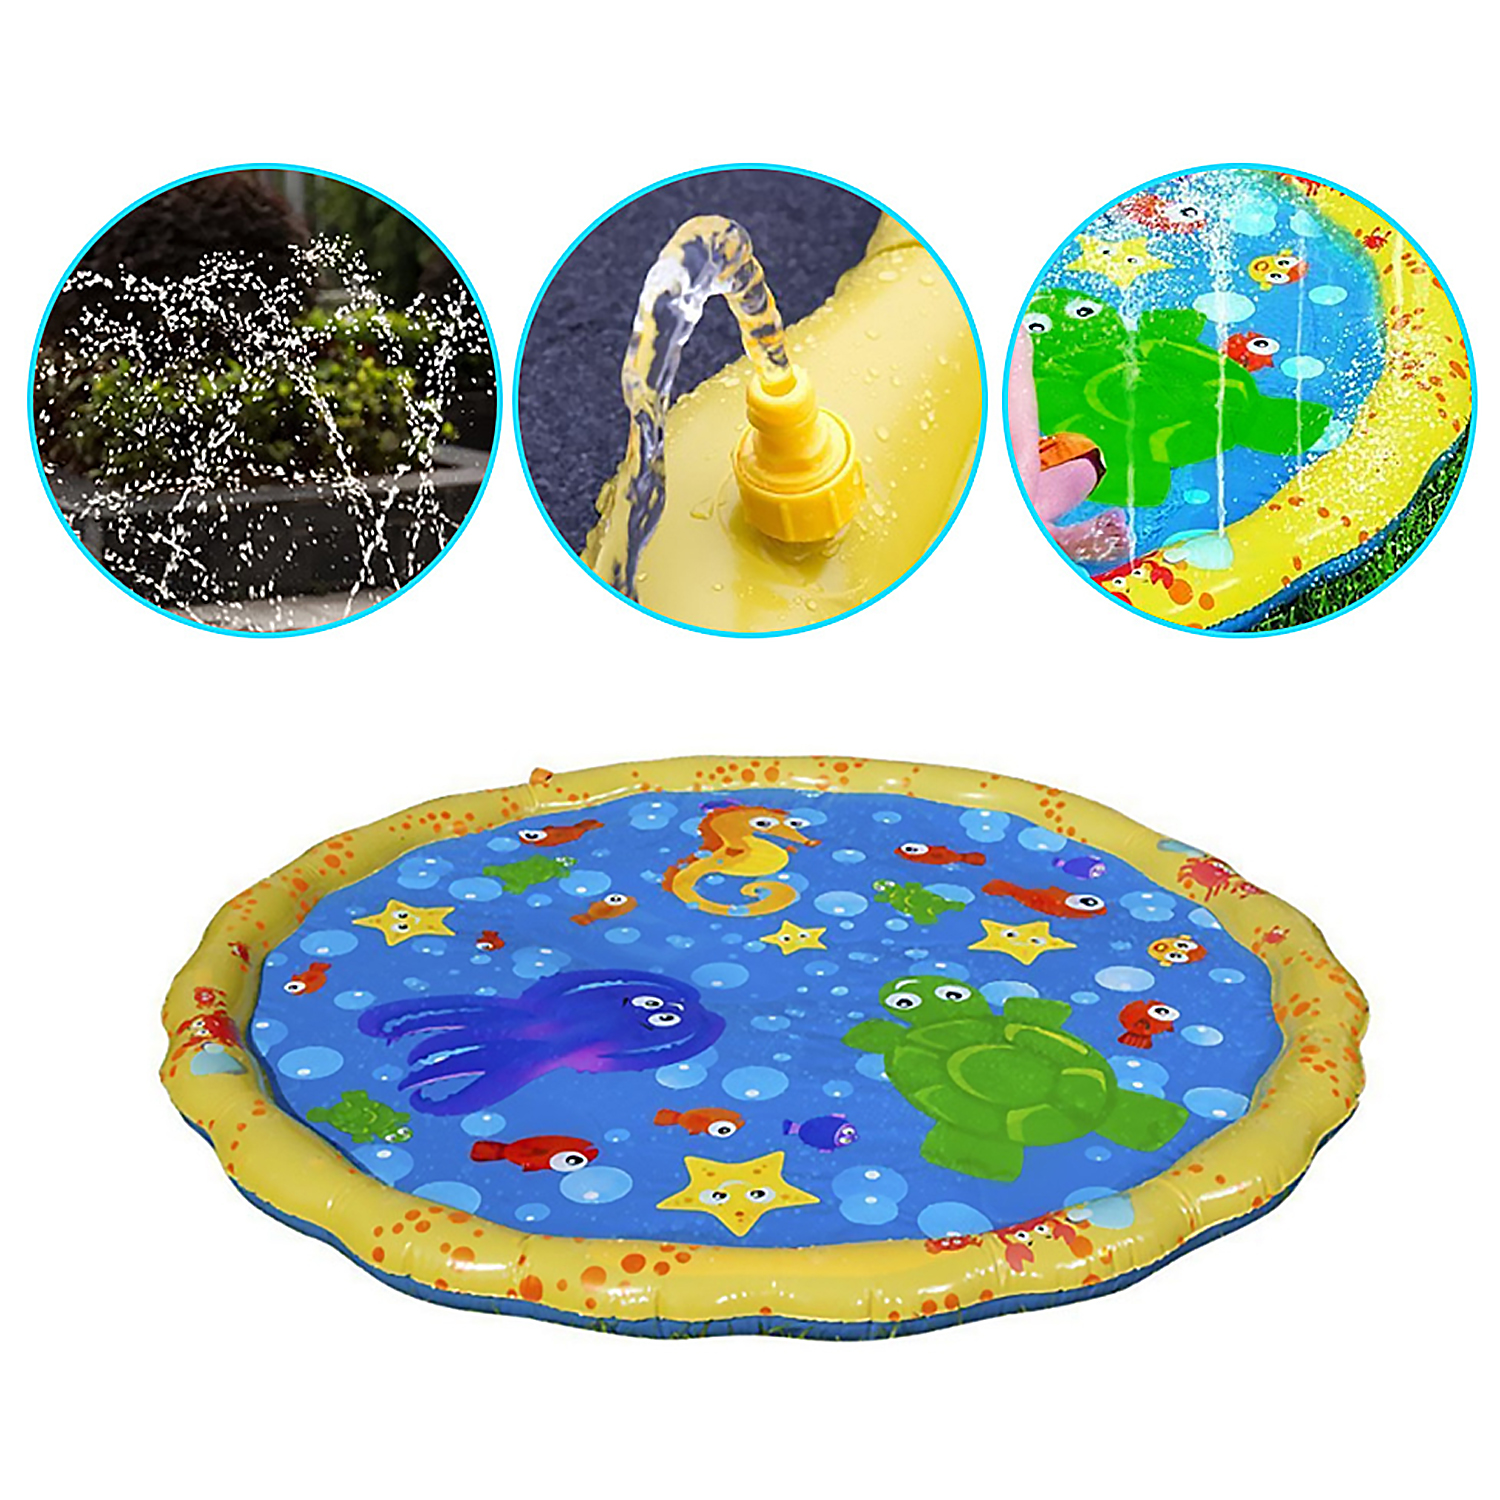 Besegad 100cm Baby Splash Water Spray Mat For Children Swimming Pool Outdoor Toys Funny Inflatable Sprinkle Mat Play Mat Pad Toy